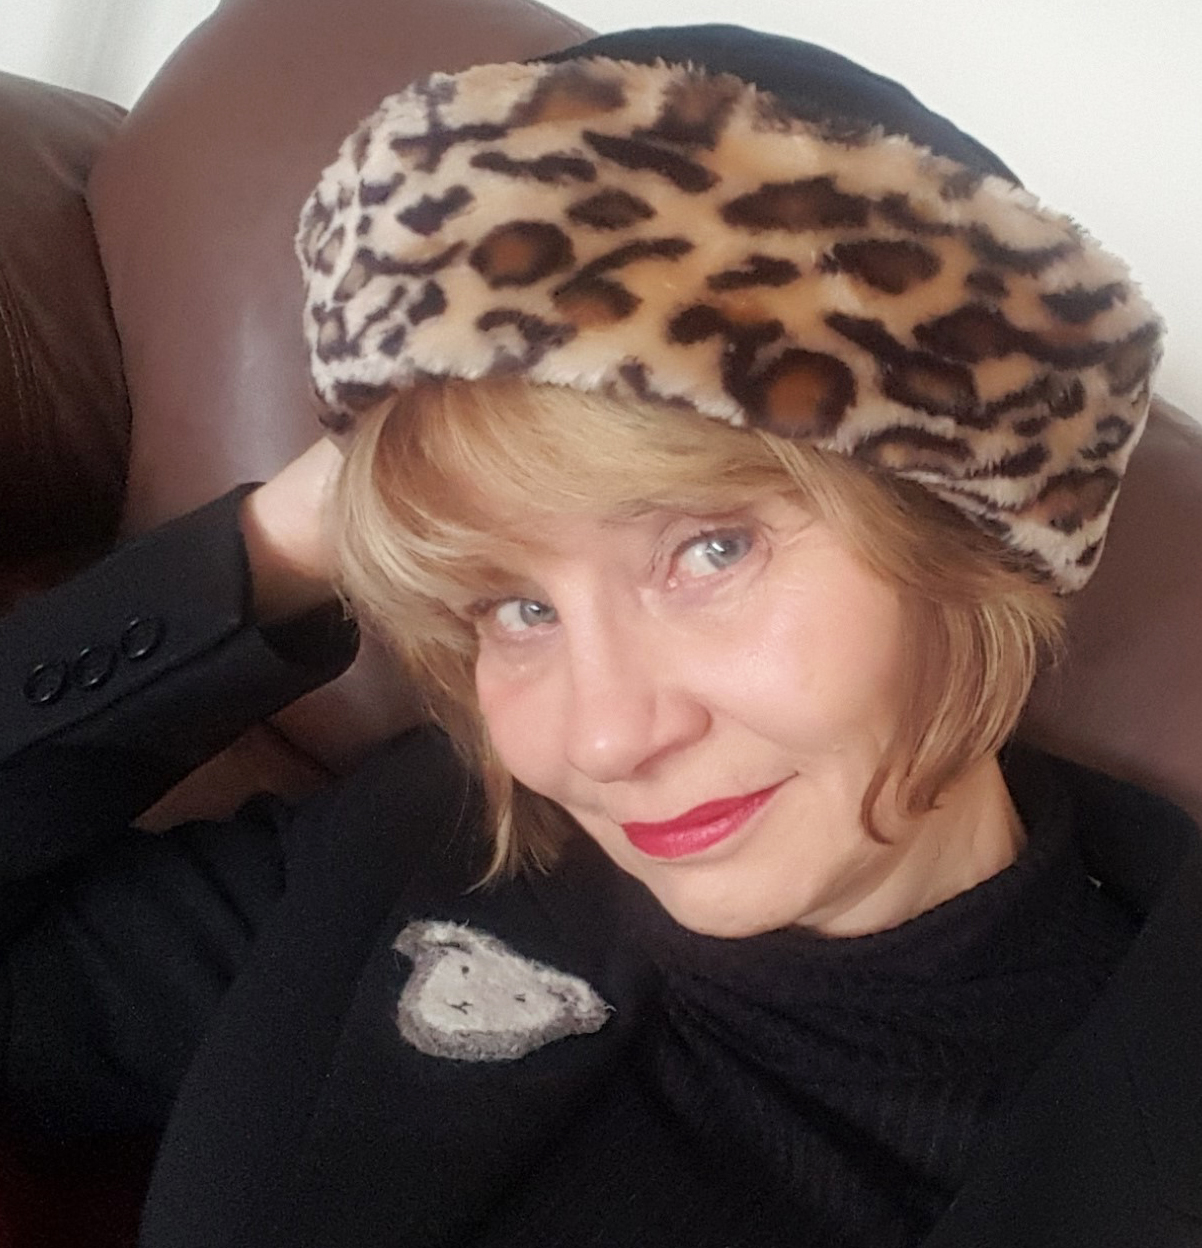 Image showing Gail Hanlon Is This Mutton in leopard print hat